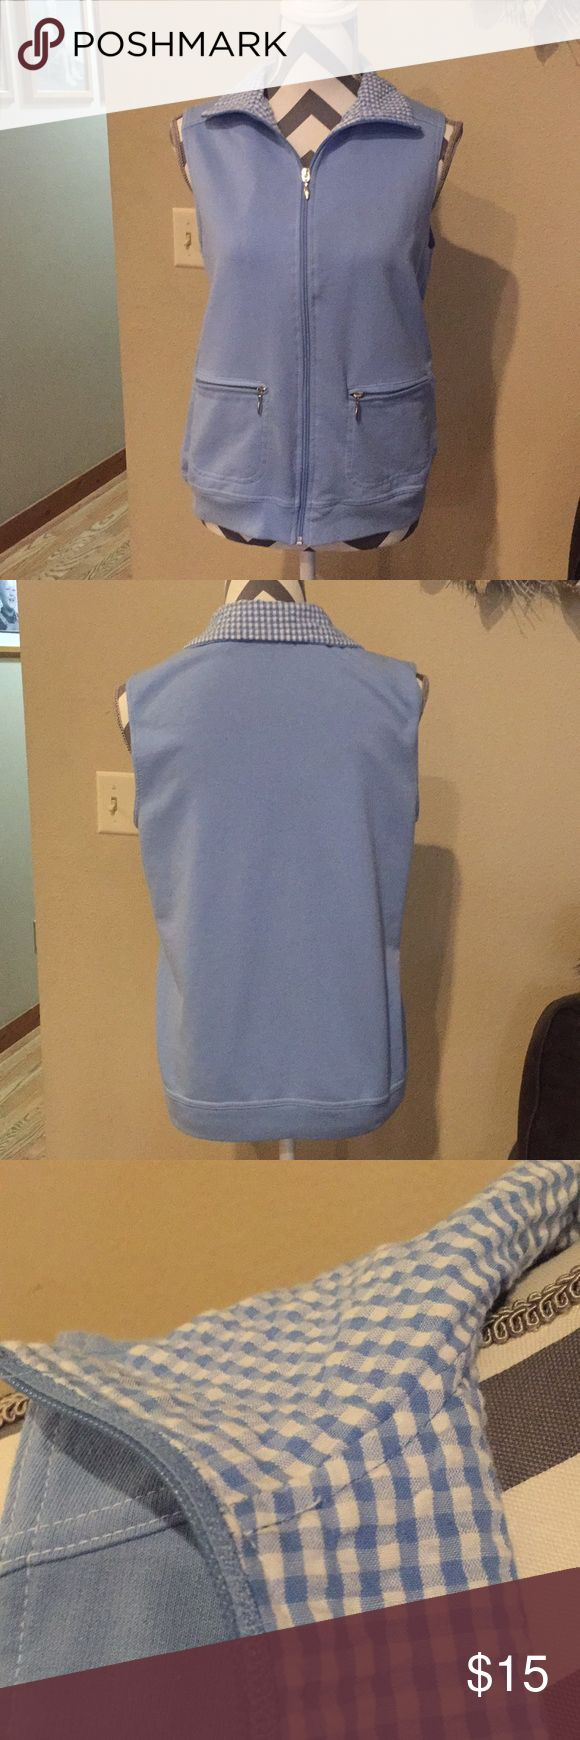 Sleeveless lightweight front zip vest Light blue zipped vest with blue and white gingham lined and accented collar. Laura Scott Jackets & Coats Vests